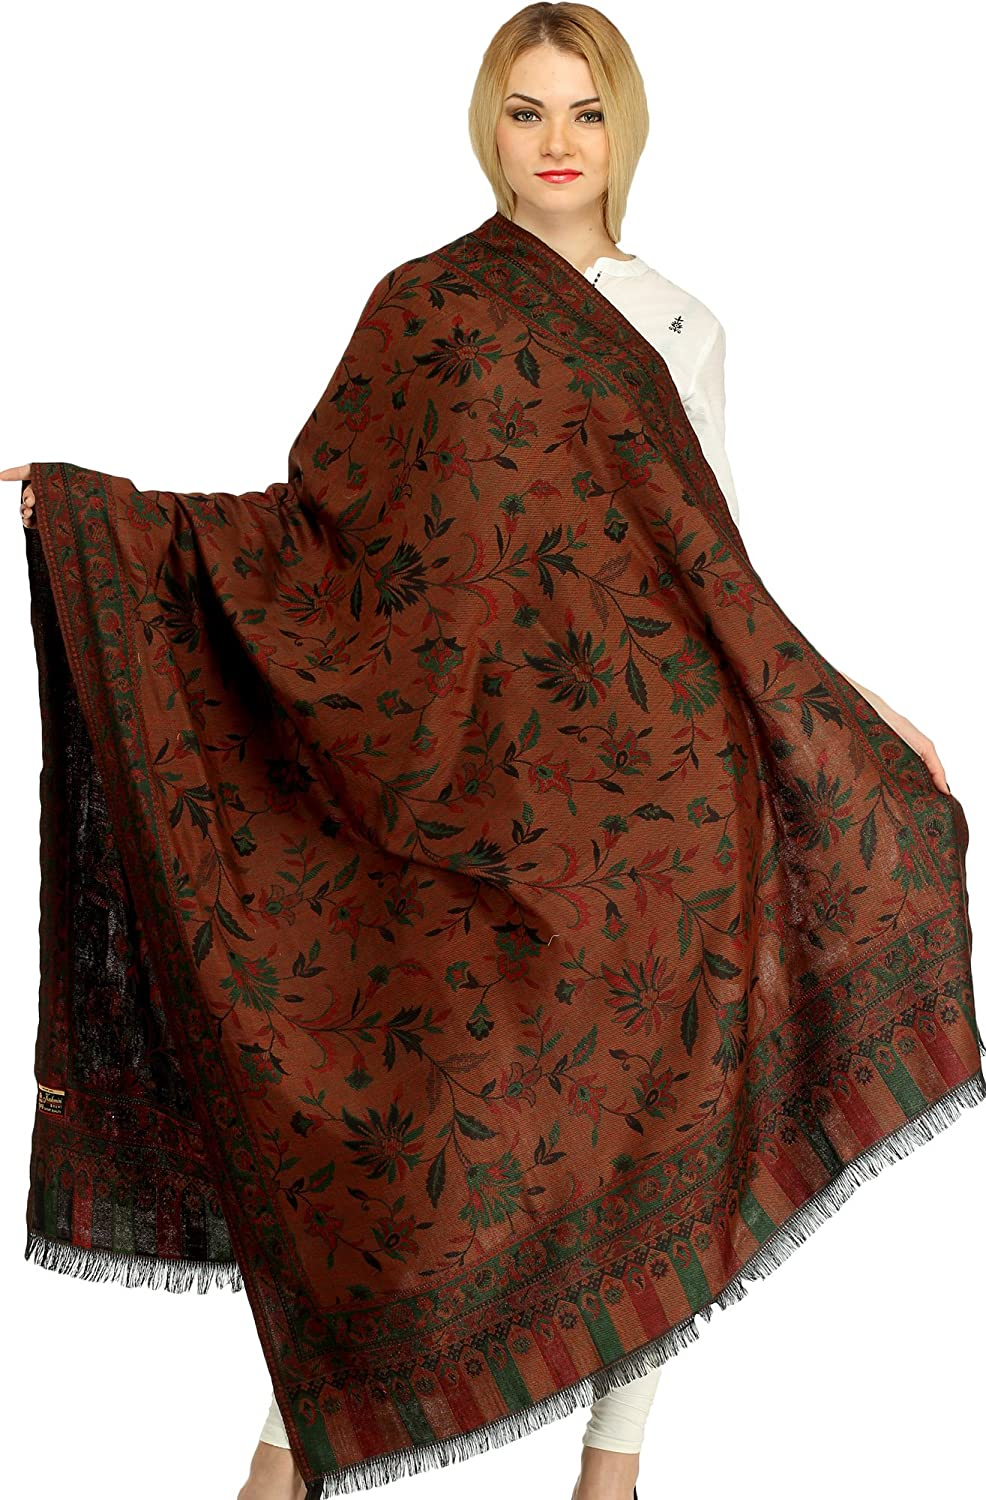 Exotic India Reversible Jamawar Shawl from Amritsar wit - Color Pirate Black SWE82--pirate-black